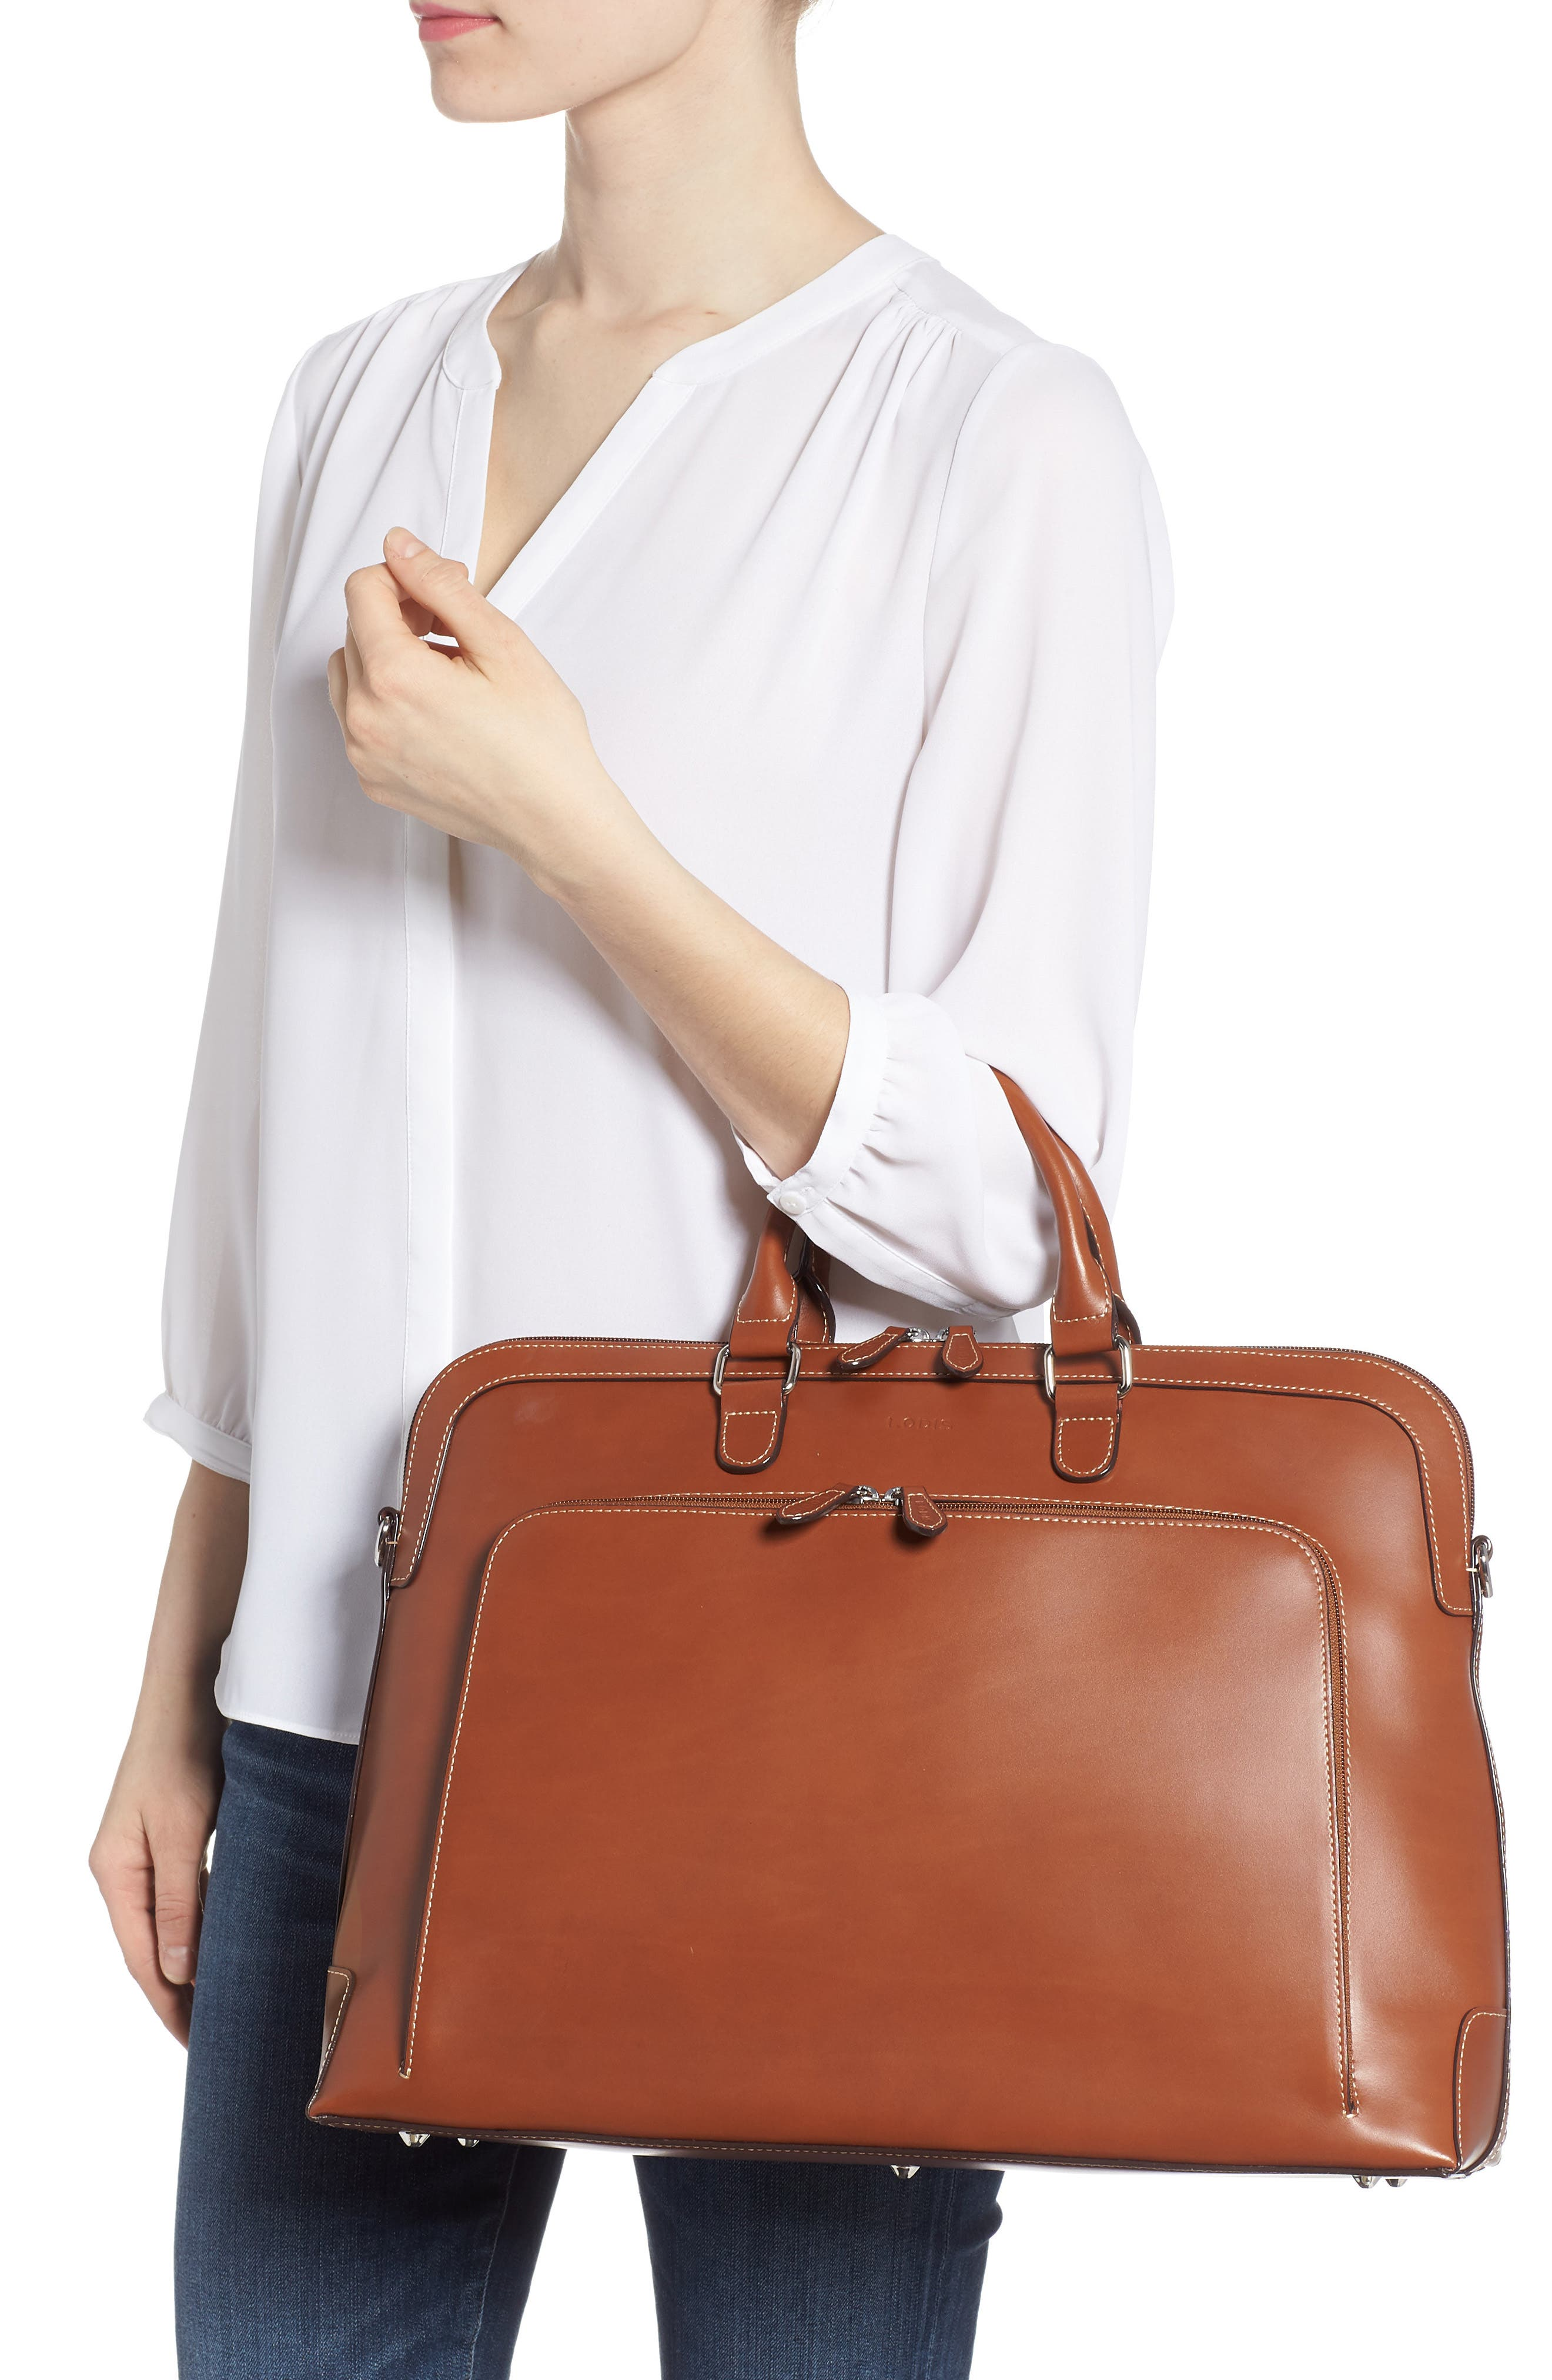 Audrey Under Lock & Key - Brera RFID Leather Briefcase,                             Alternate thumbnail 2, color,                             Sequoia/ Papaya